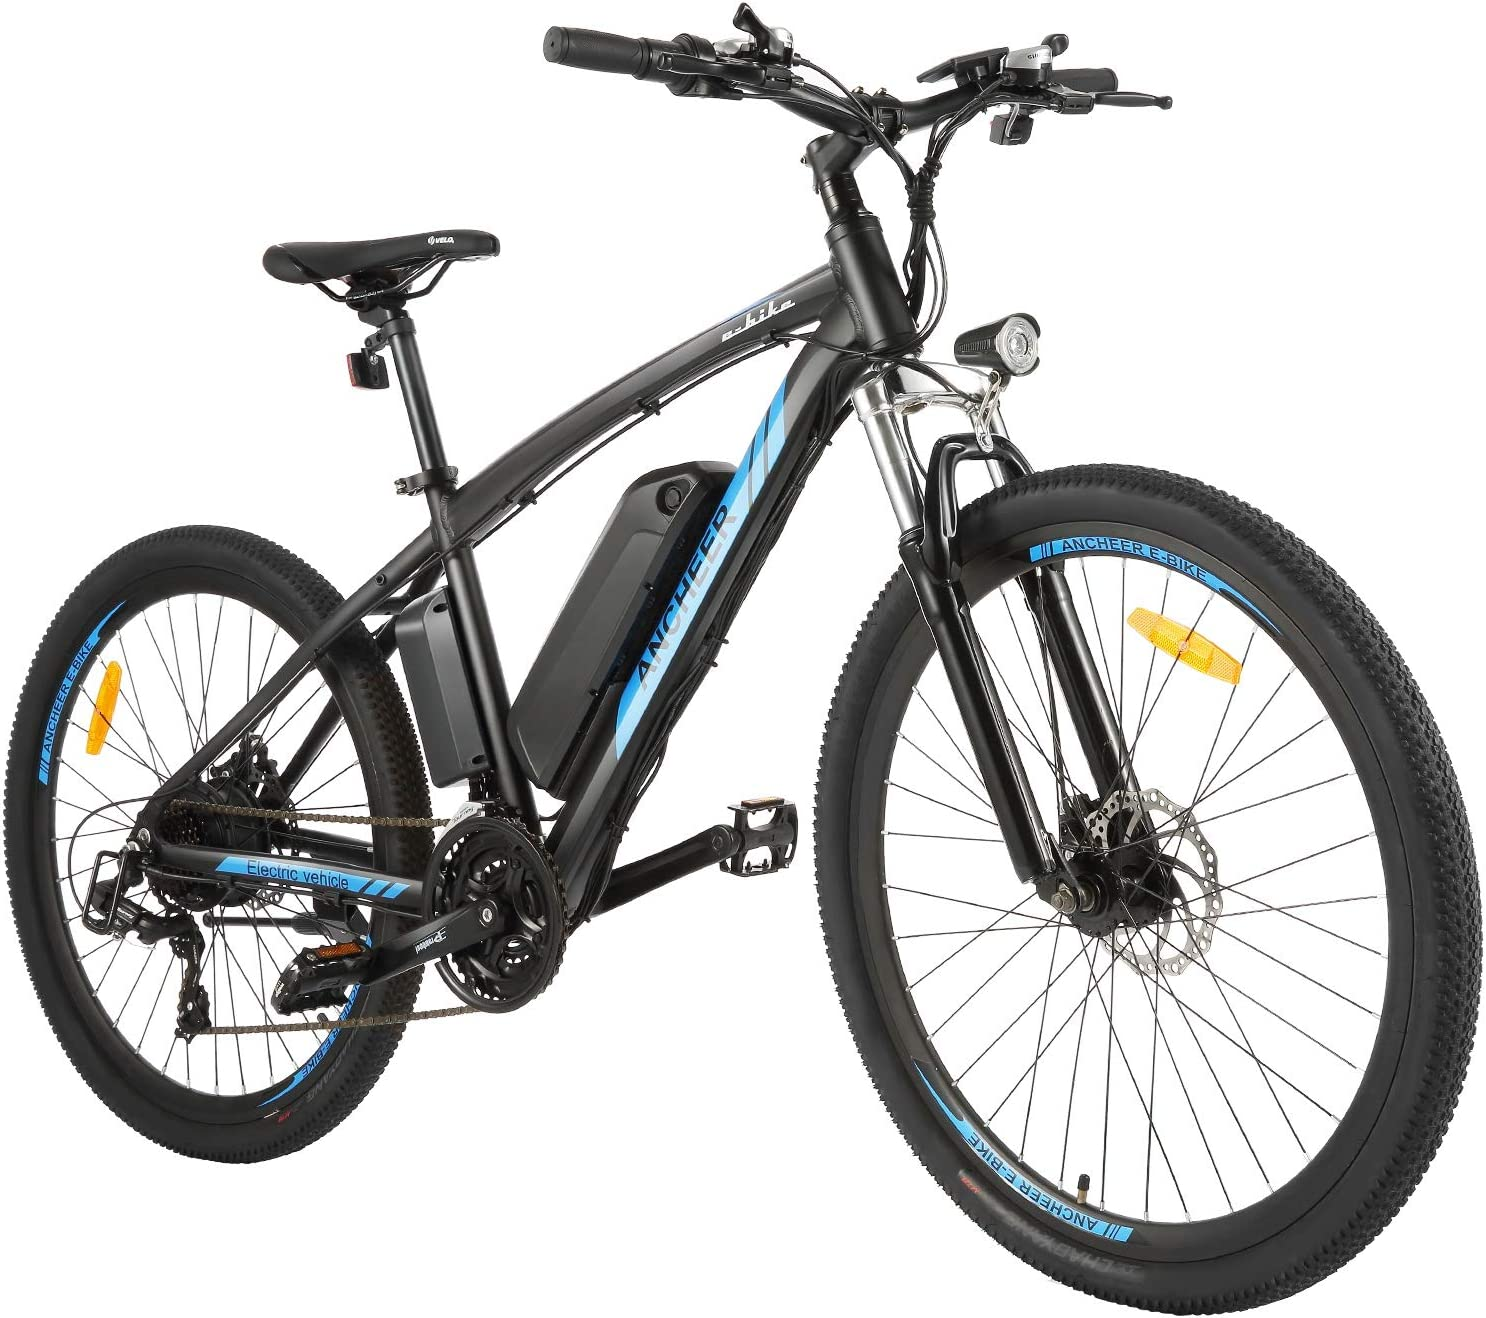 "best electric bike under 1000: Mountain Bike 350W Ebike 26/27.5"" Electric Bicycle by ANCHEER"